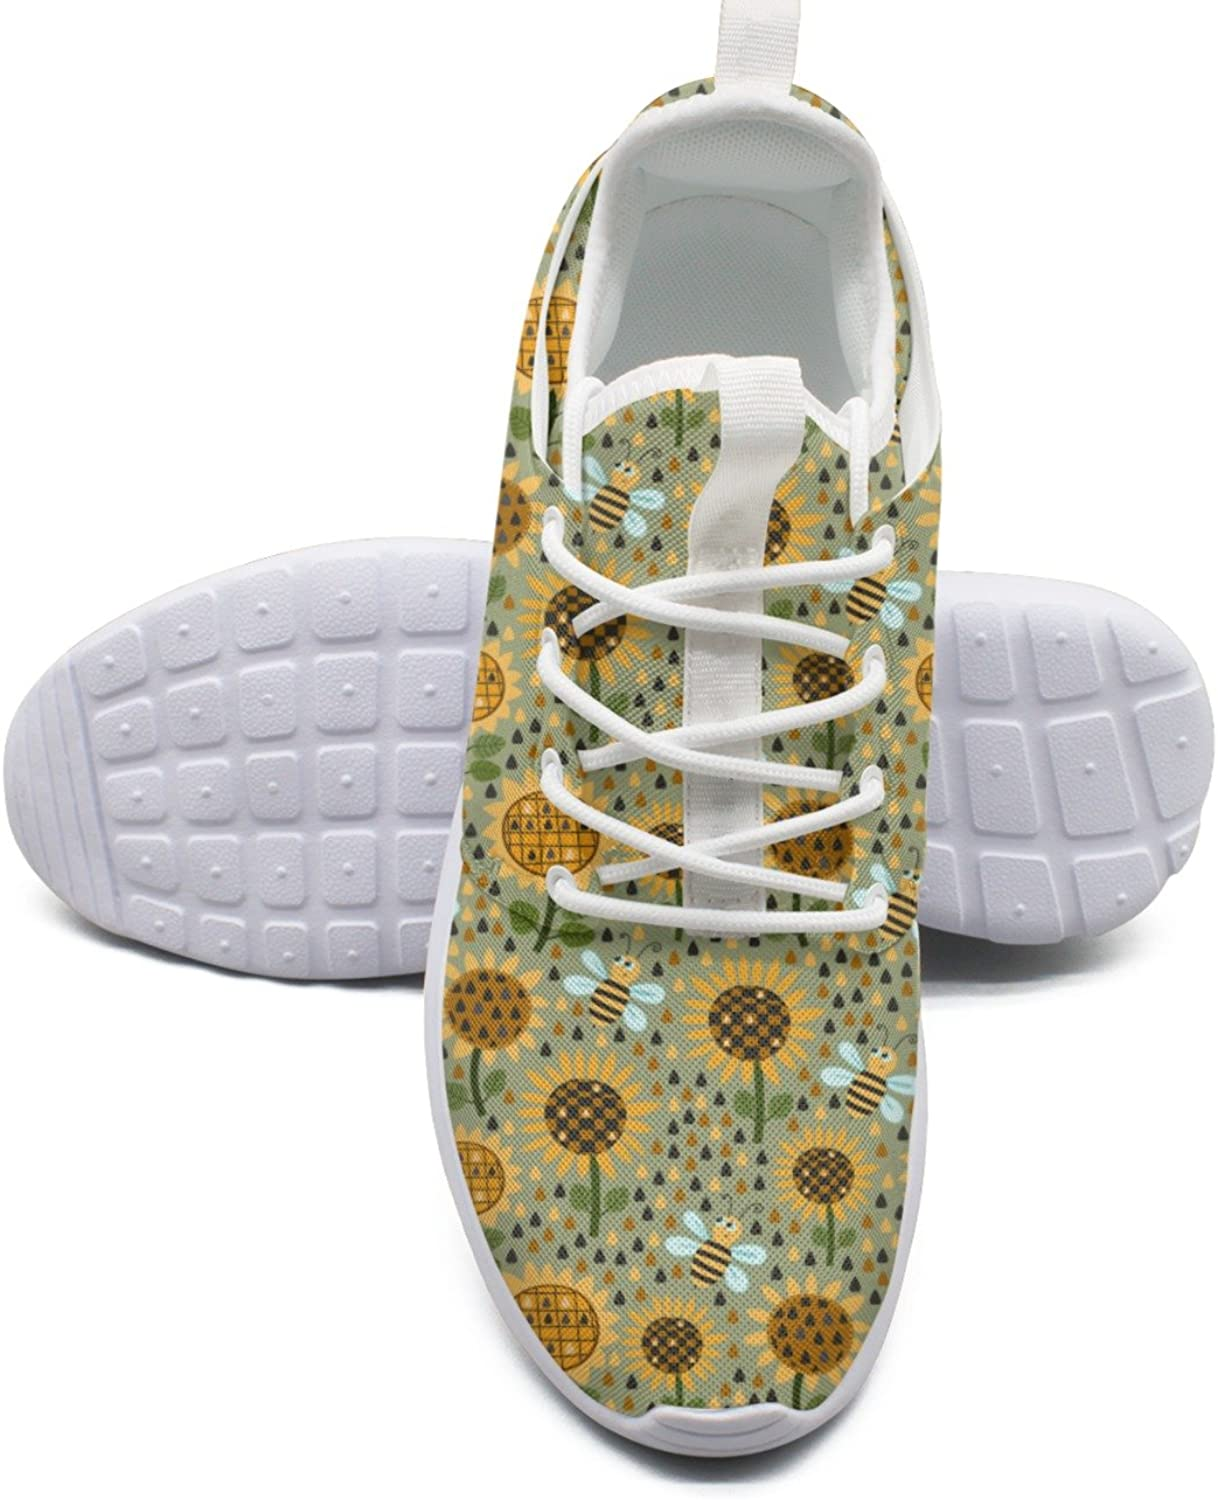 ERSER How to Plant Sunflowers Neutral Running shoes Women